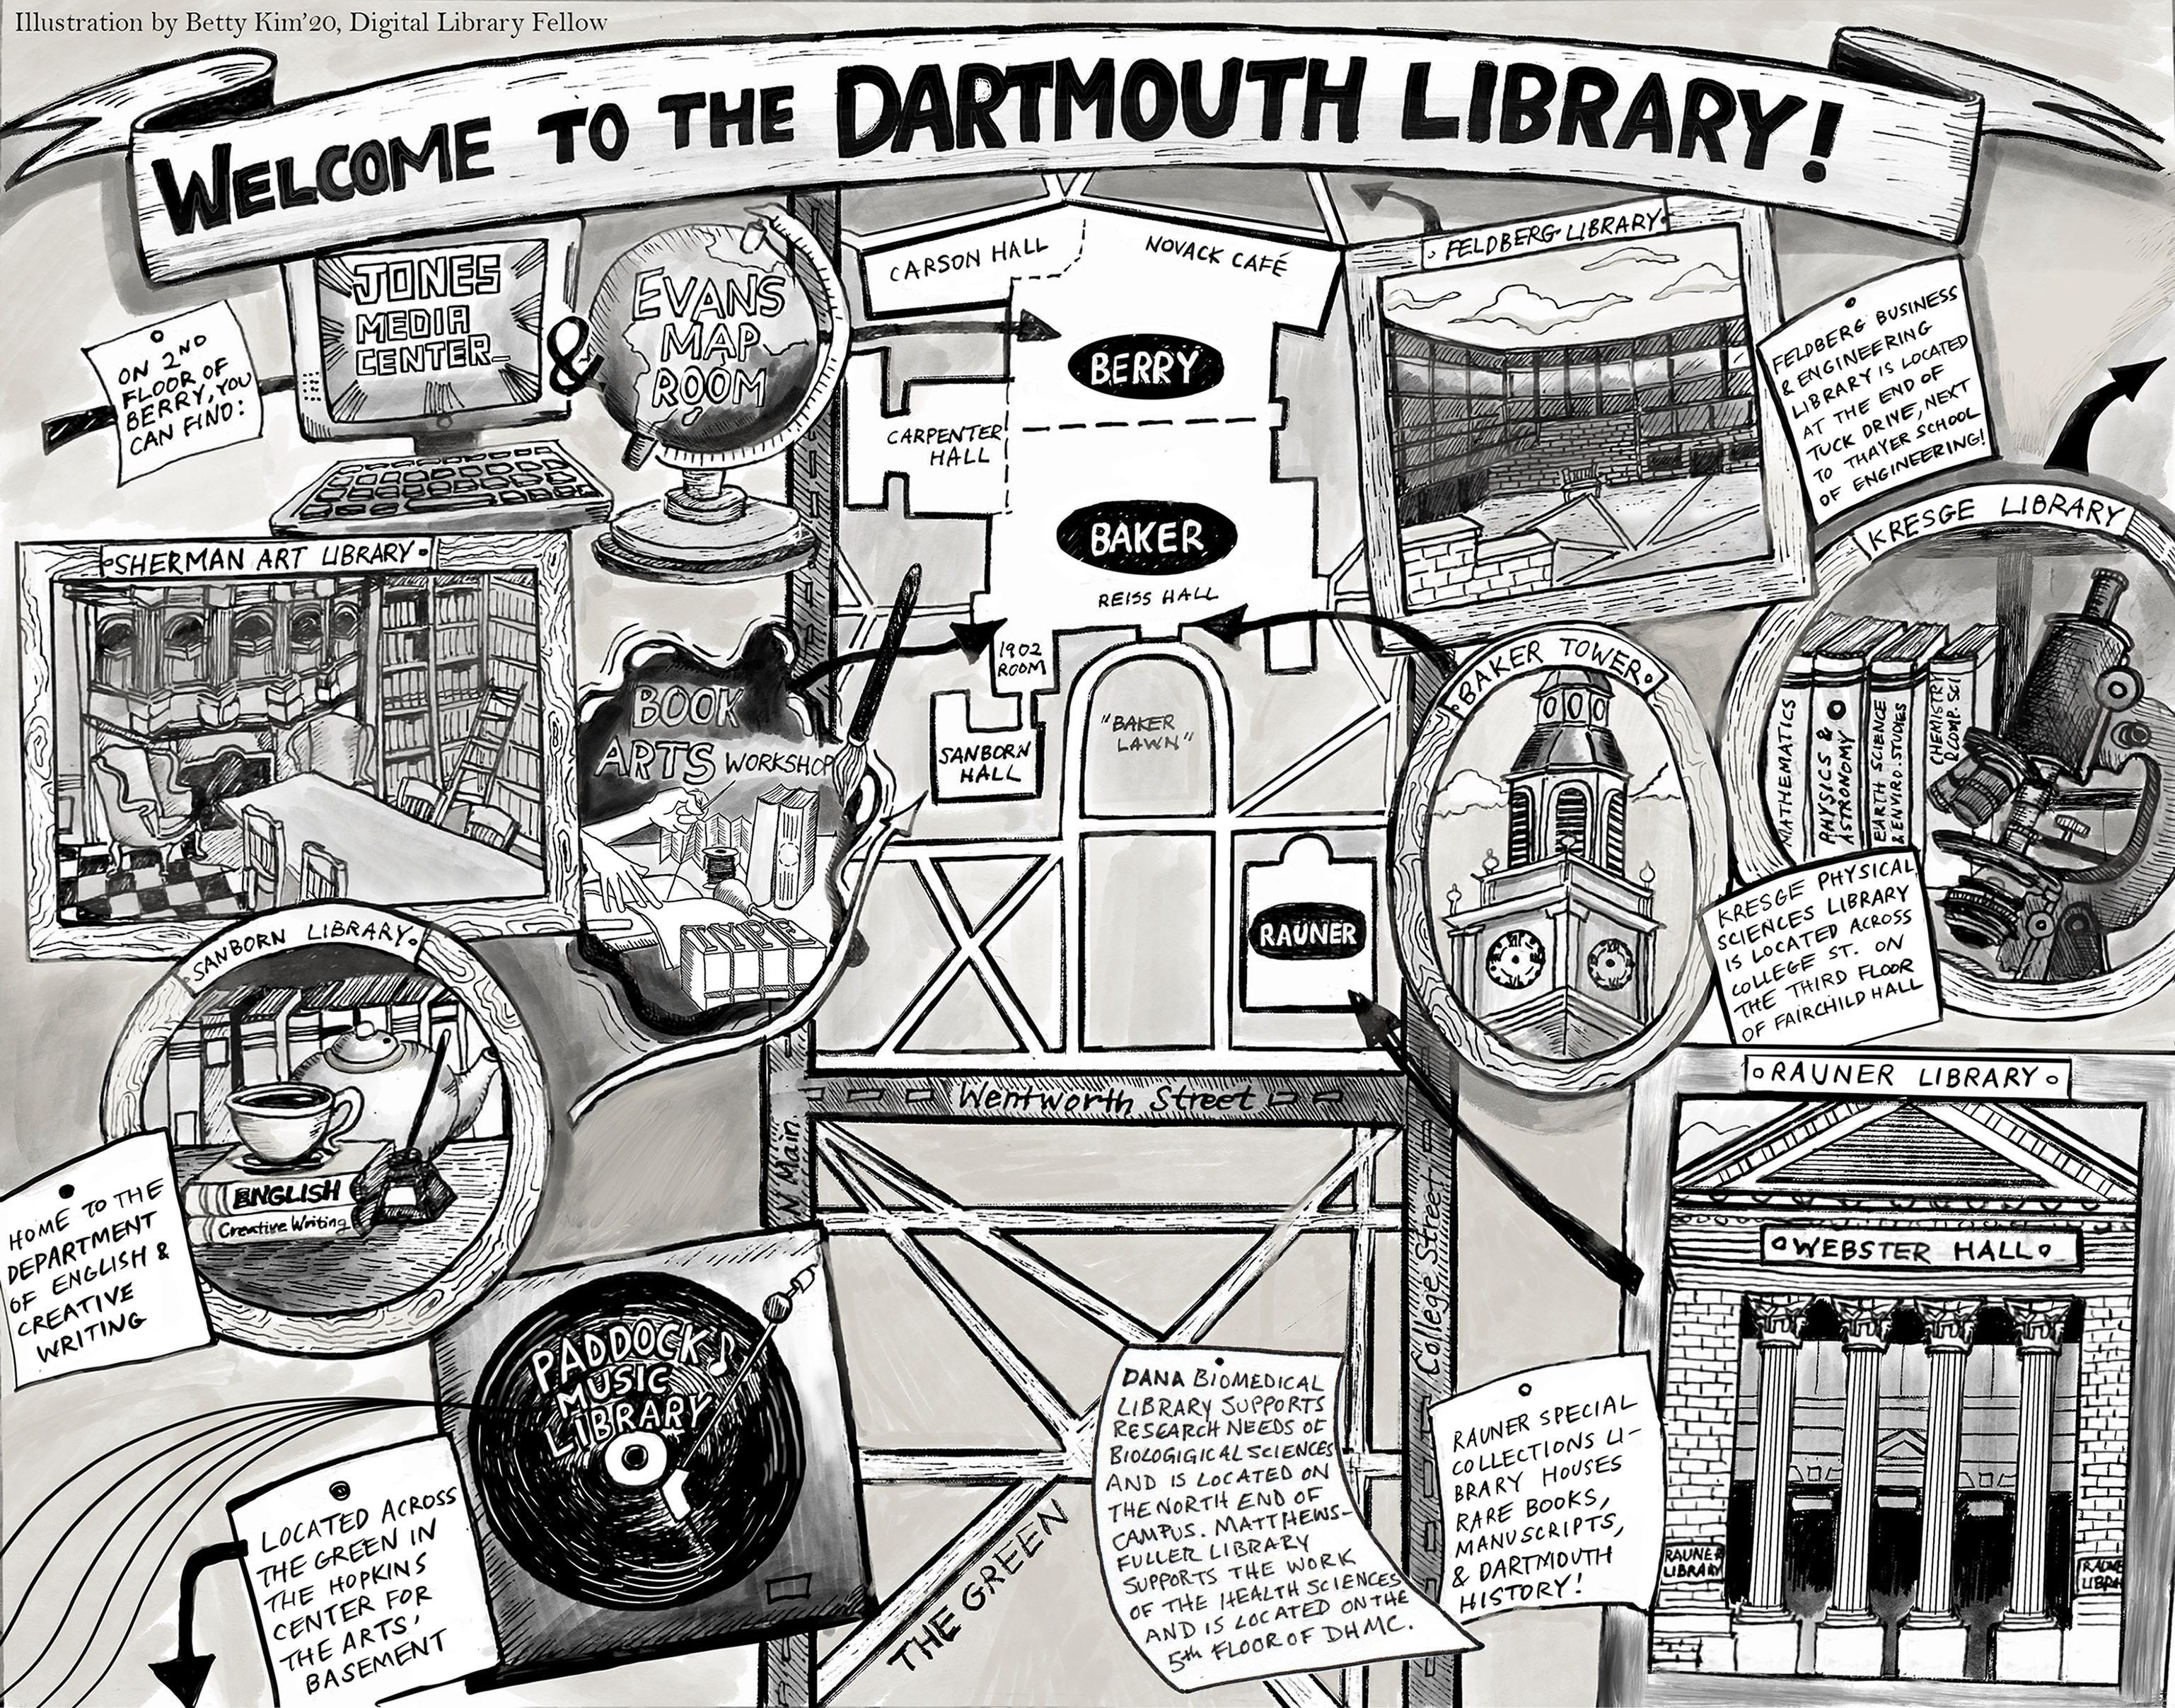 a comic/map of places in library